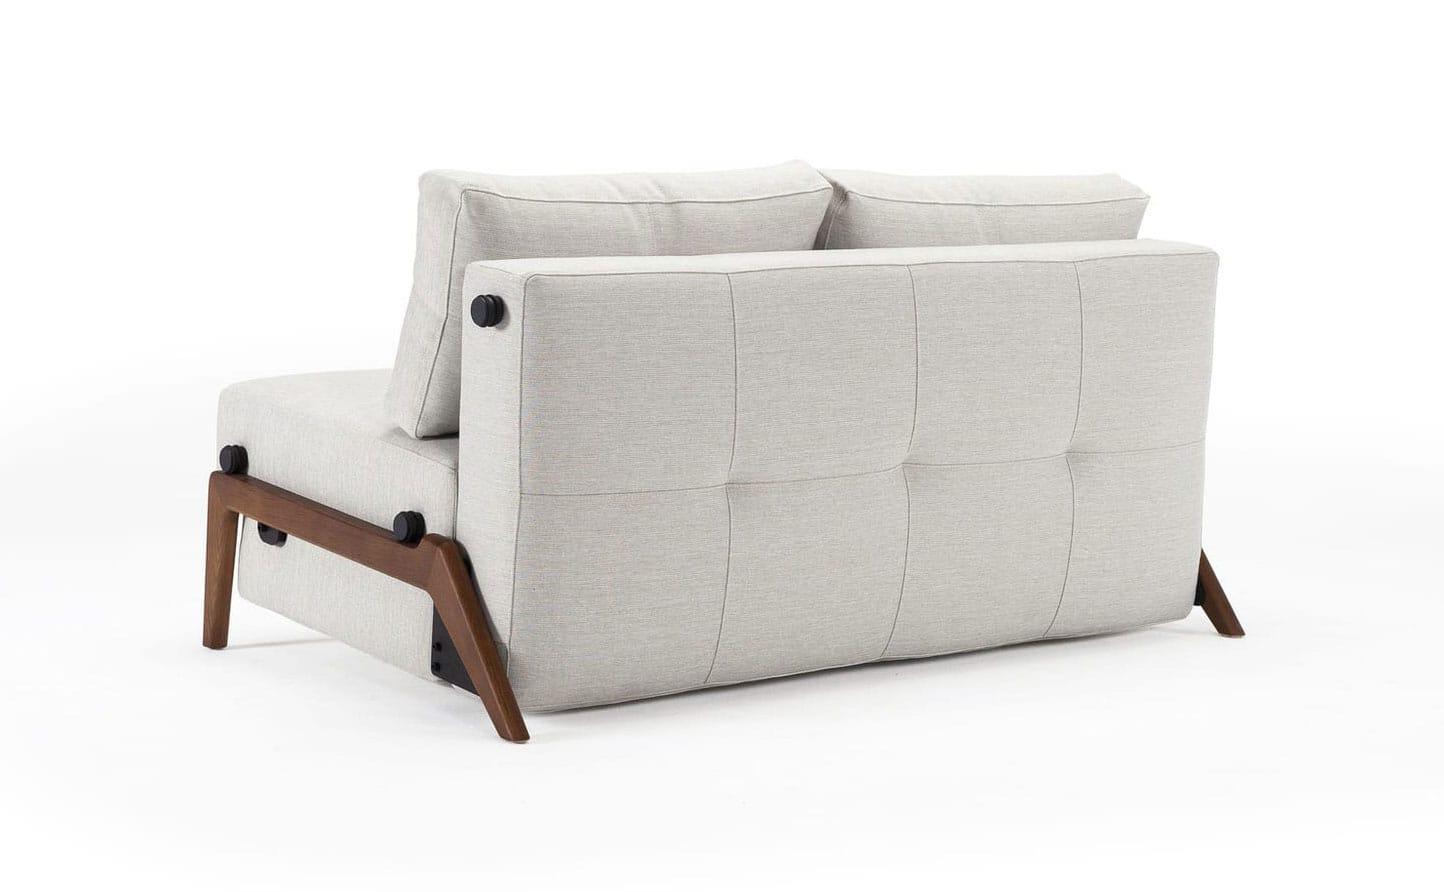 Incredible Open Box Cubed 02 Deluxe Sofa Queen Size Mixed Dance Ibusinesslaw Wood Chair Design Ideas Ibusinesslaworg